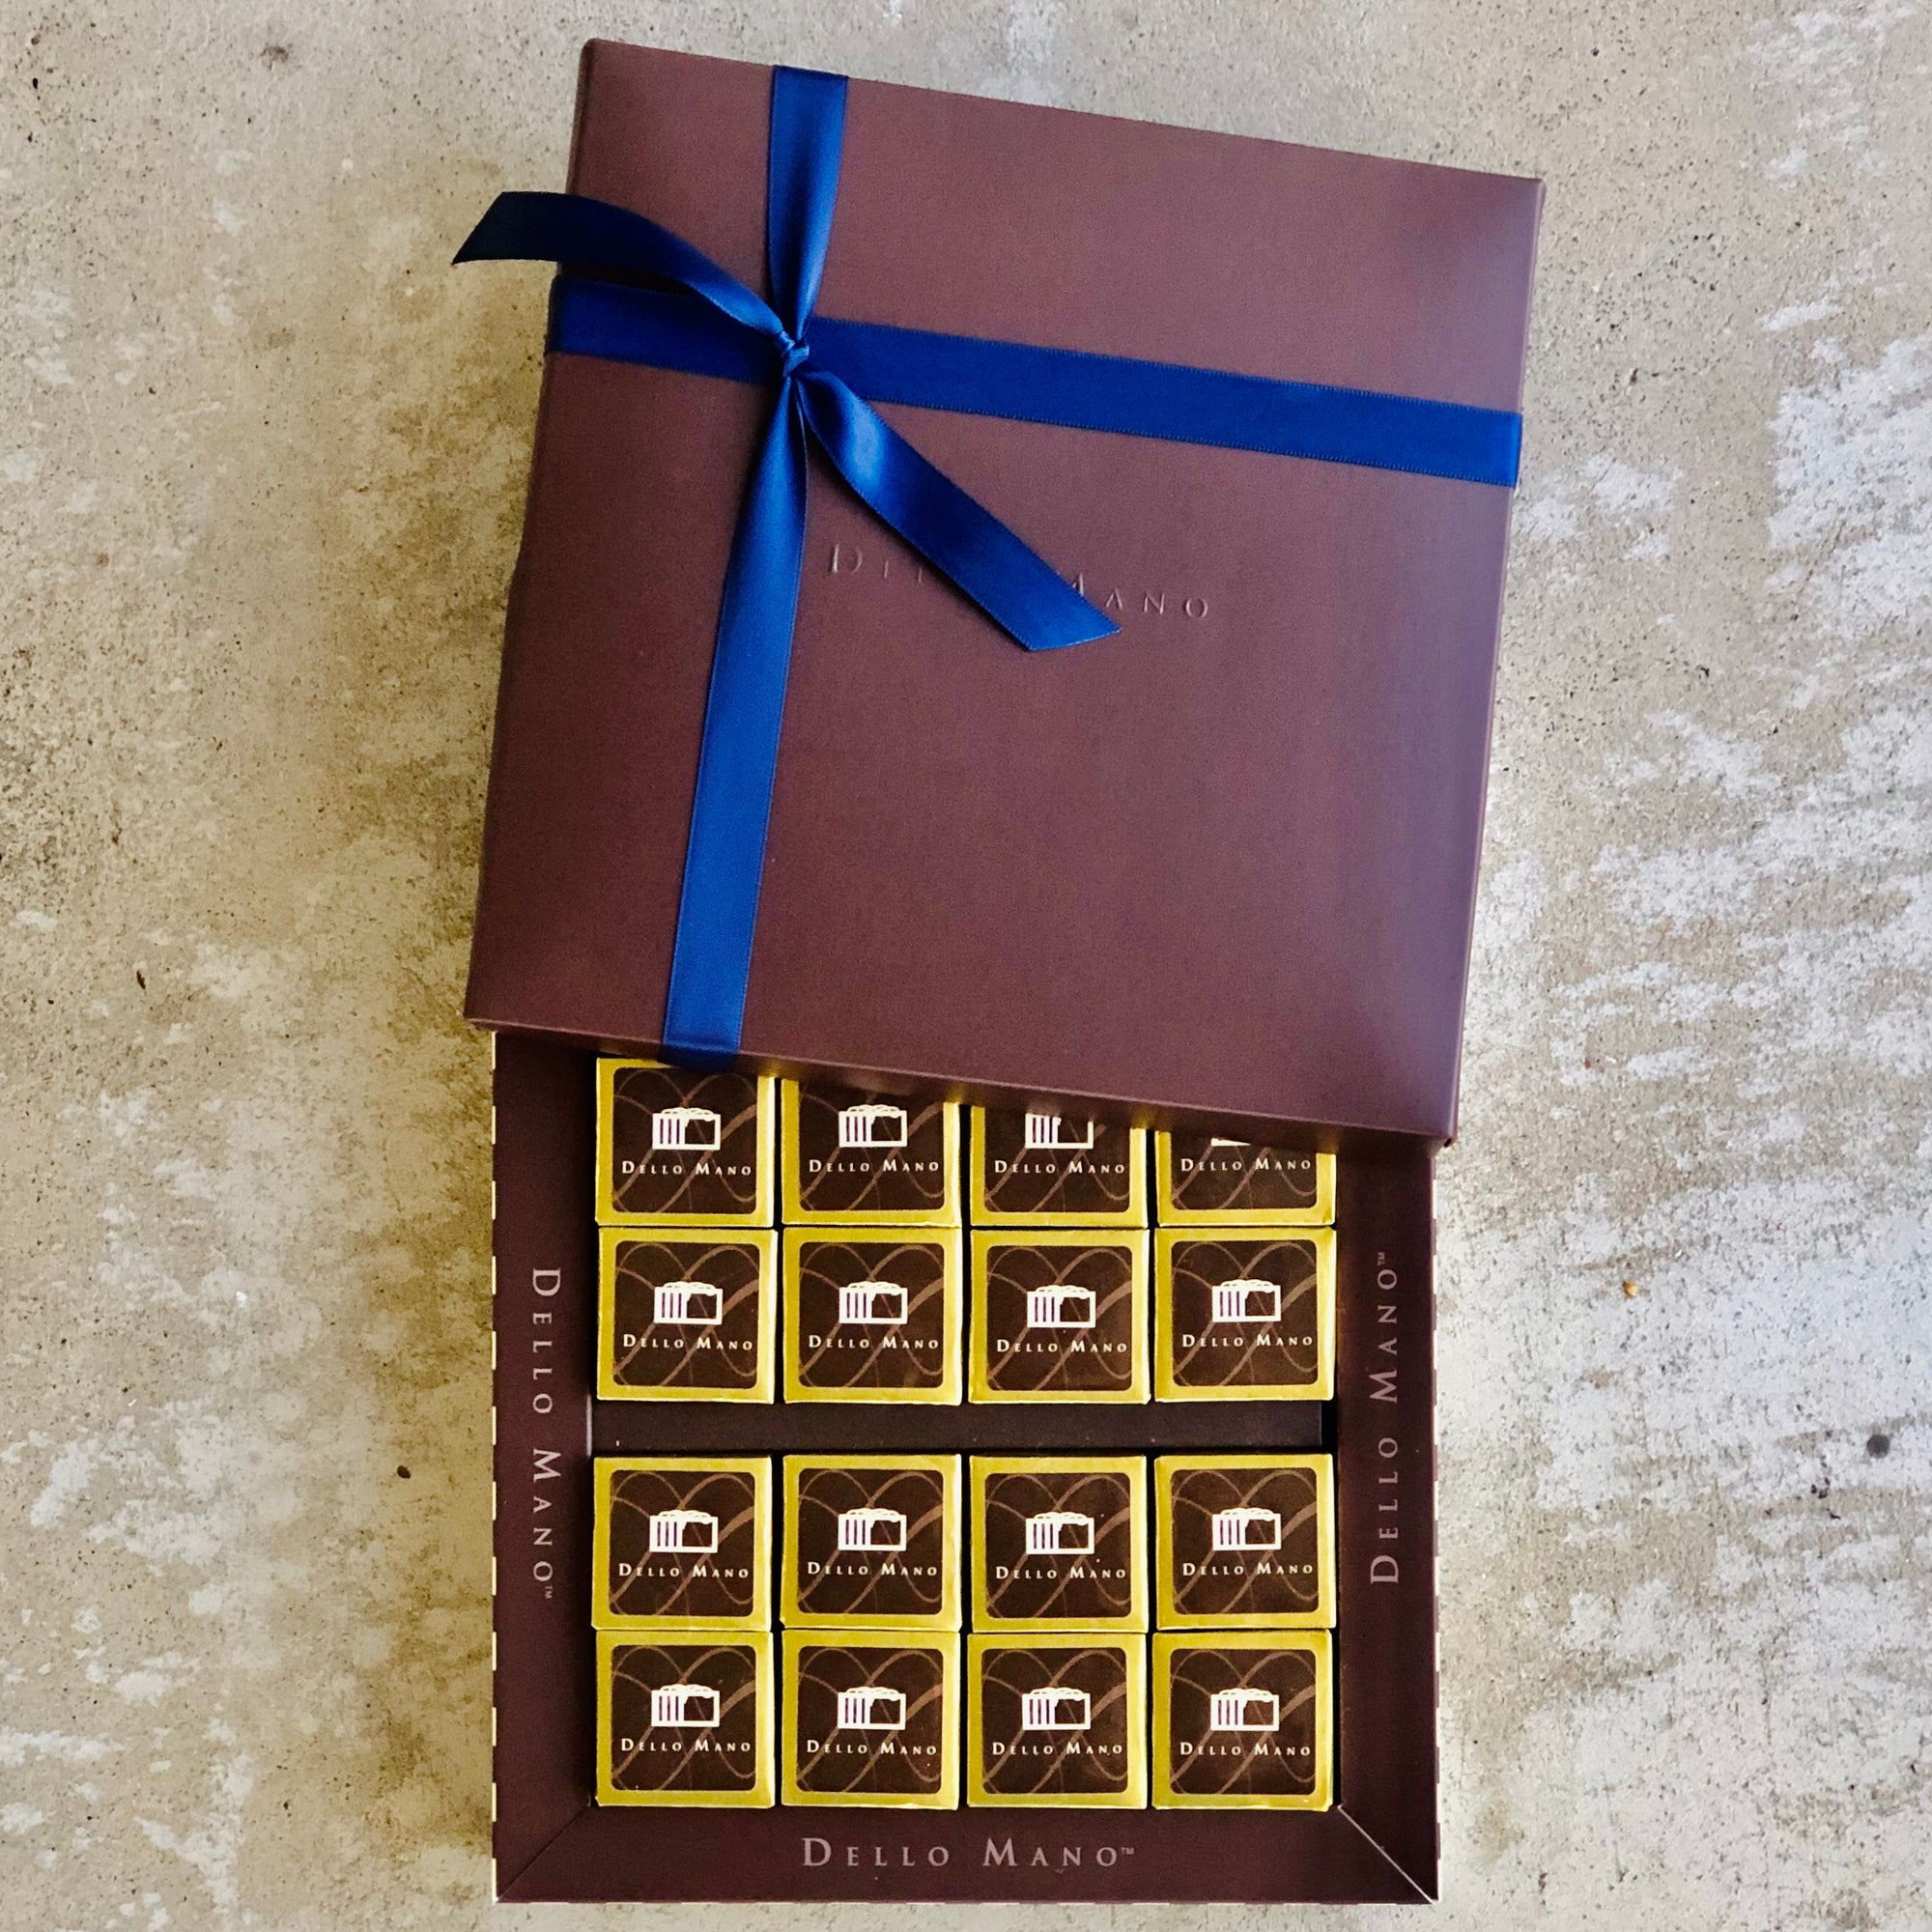 Sixteen brownies in a chocolate gift box with blue ribbon